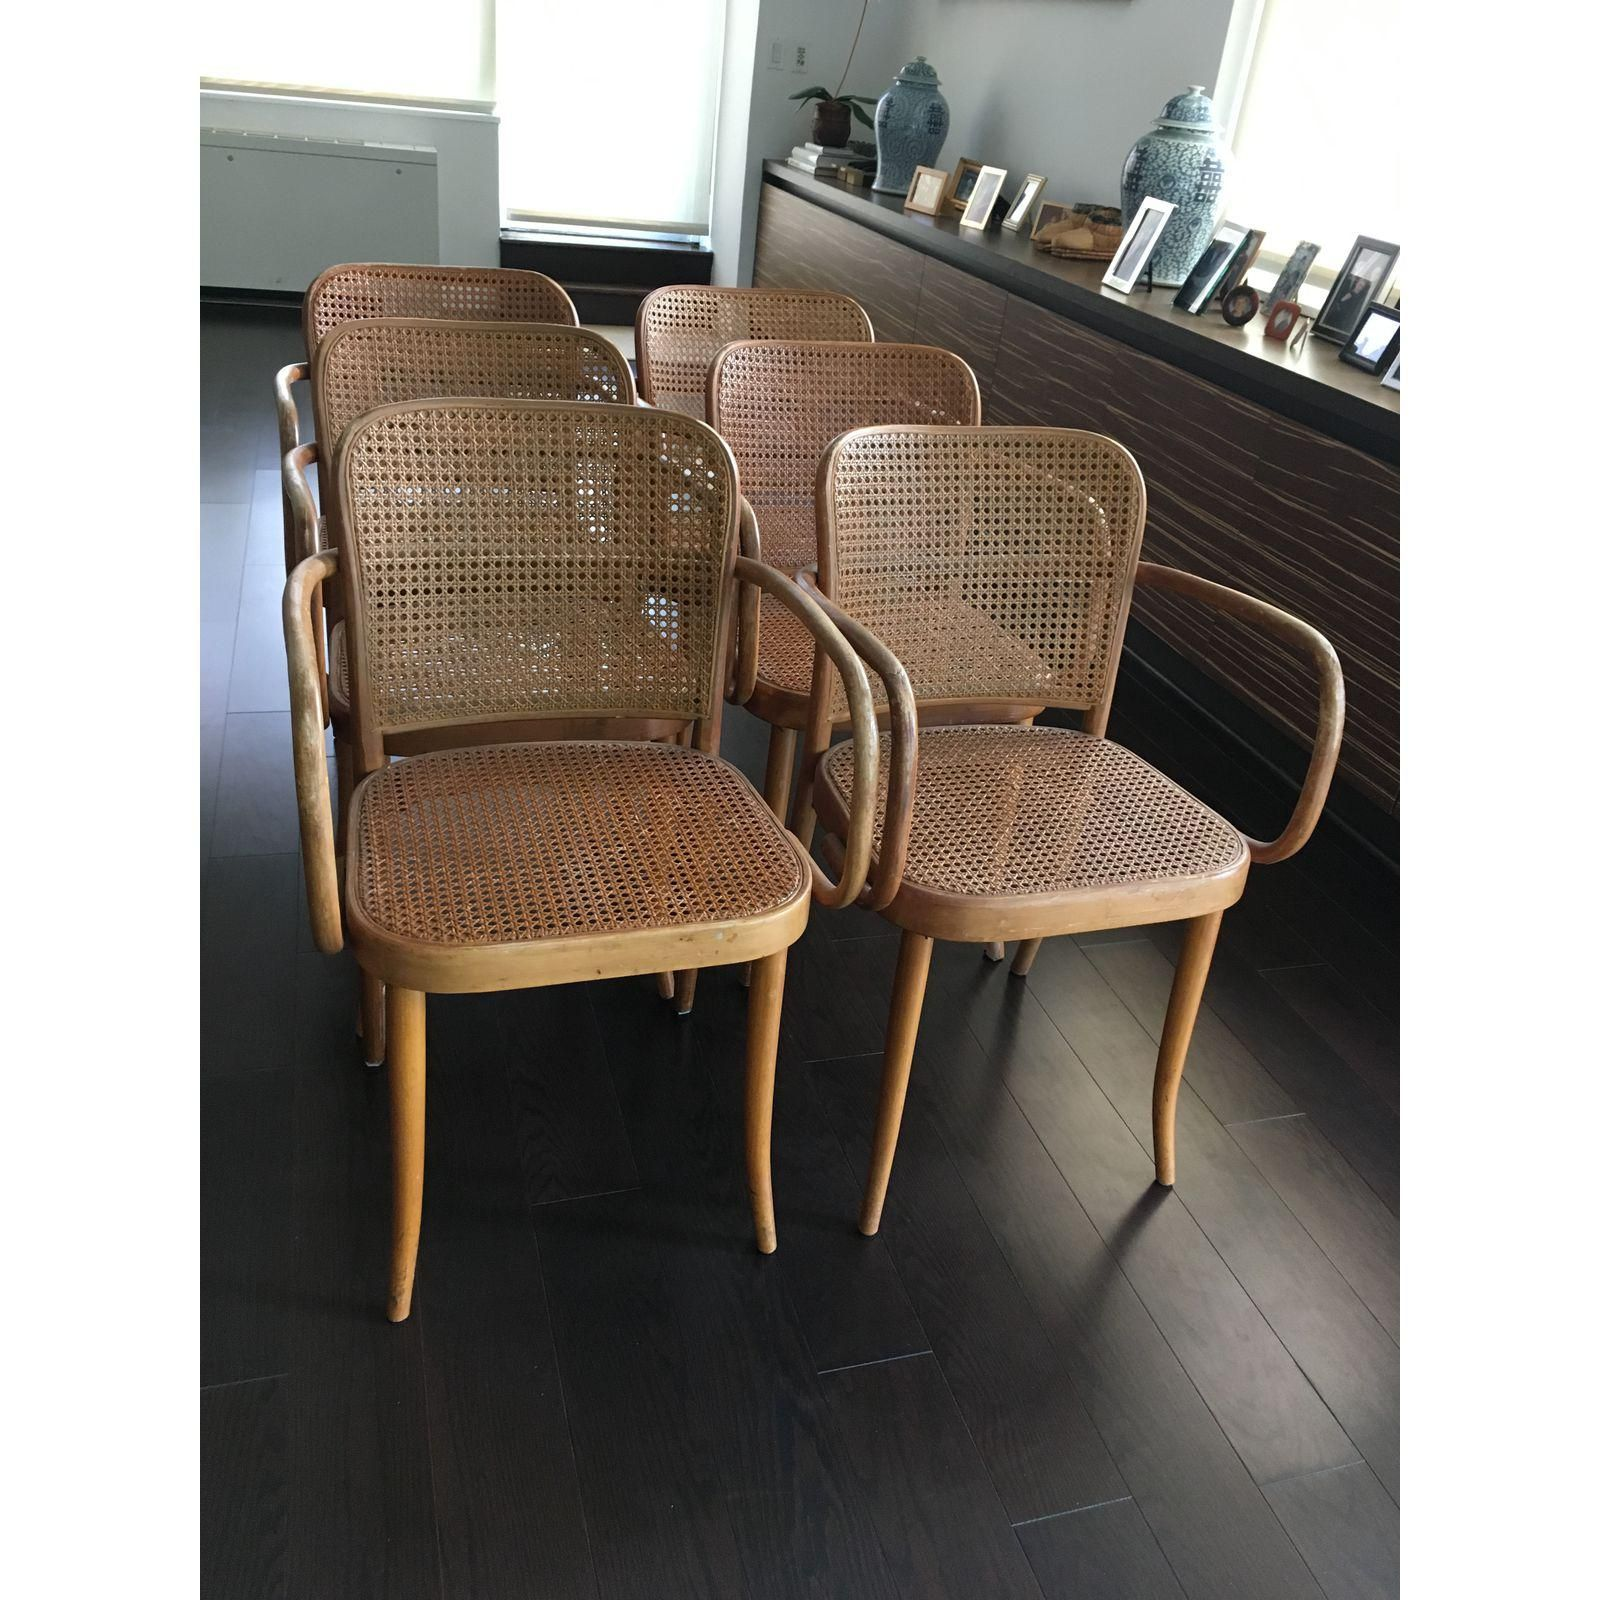 Josef Hoffmann Thonet No 811 Bentwood Cane Chairs   Set Of 6   Image 5 Of 5